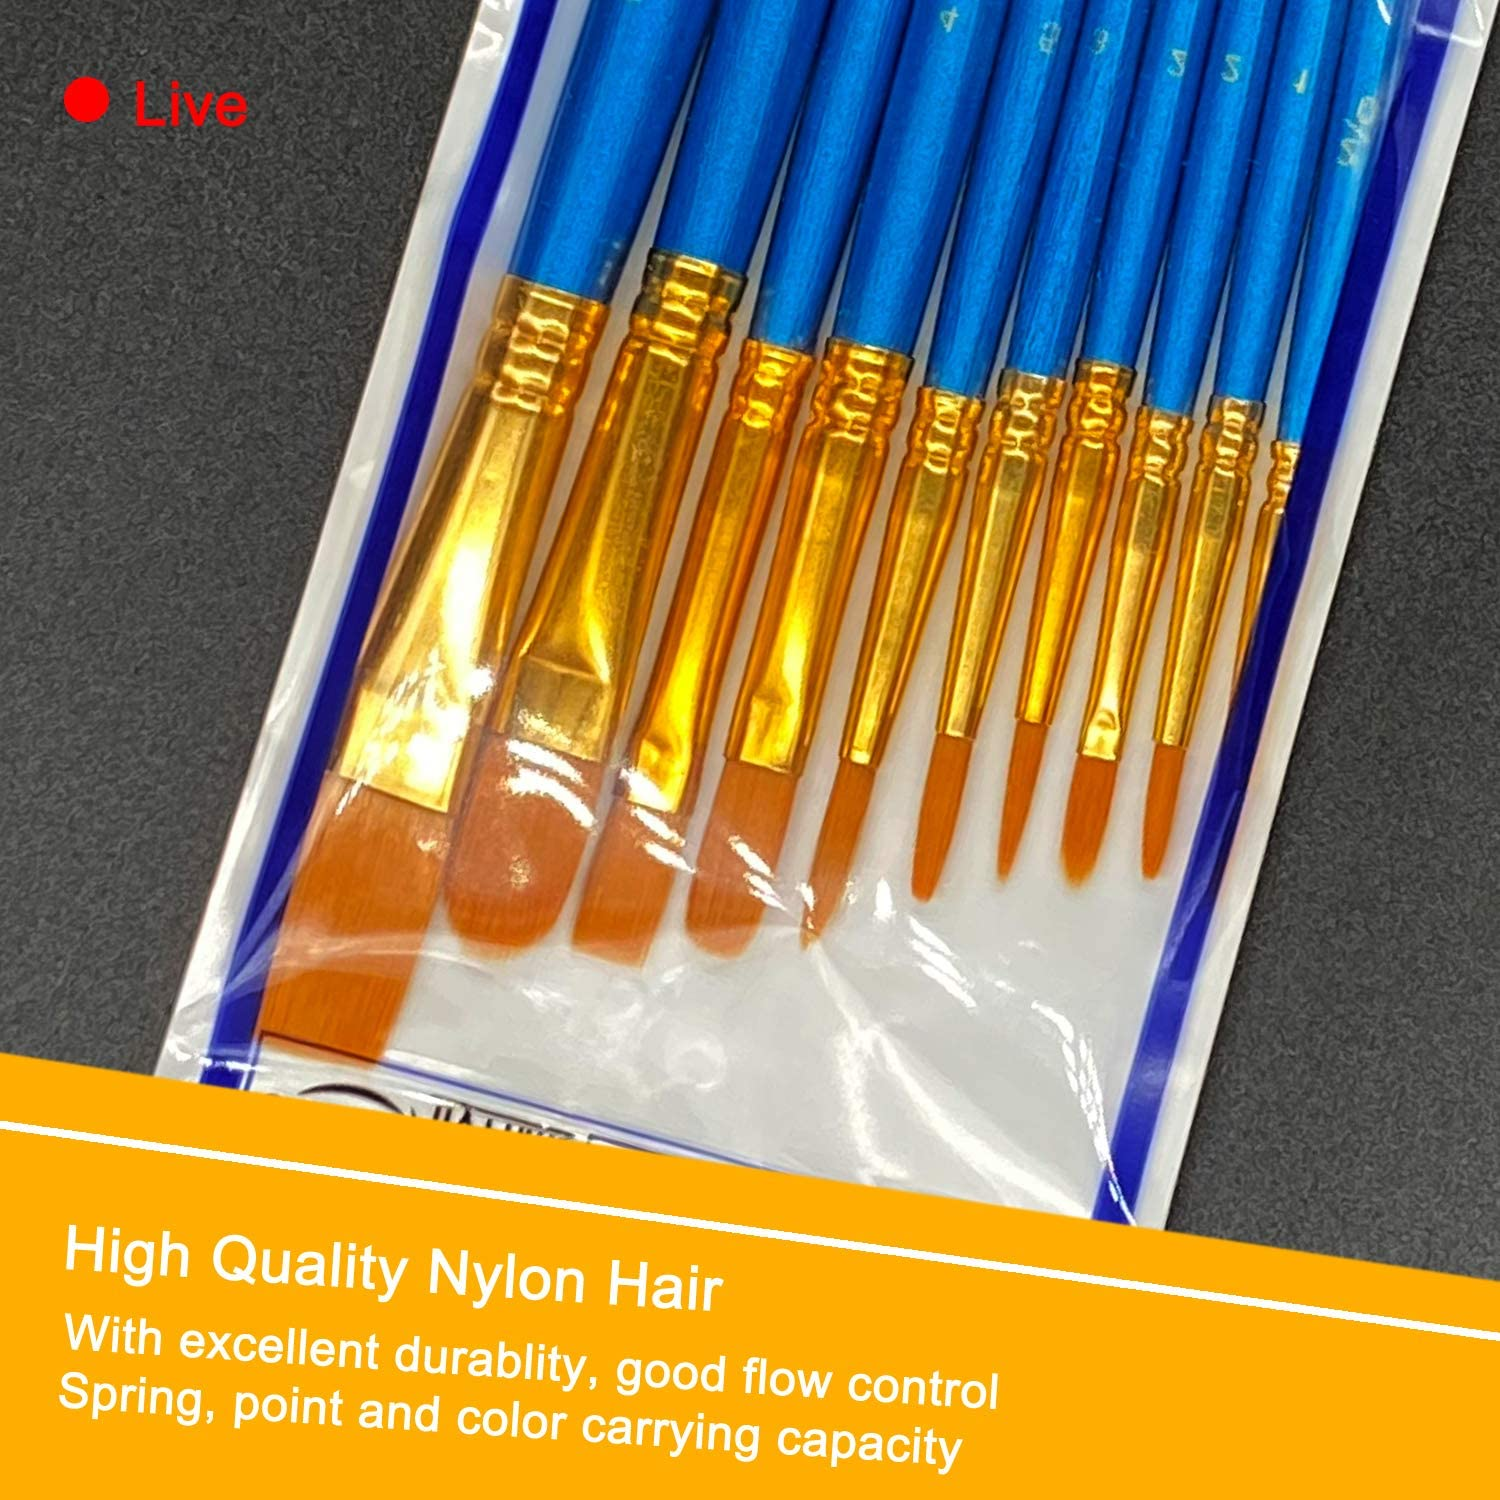 6 Pack 60 Pcs Pointed-Round Tip Paintbrushes Nylon Hair Artist Acrylic Paint Brushes for Acrylic Watercolor Oil Face Art Model BOSOBO Paint Brush Sets Blue Miniature Detailing /& Rock Painting